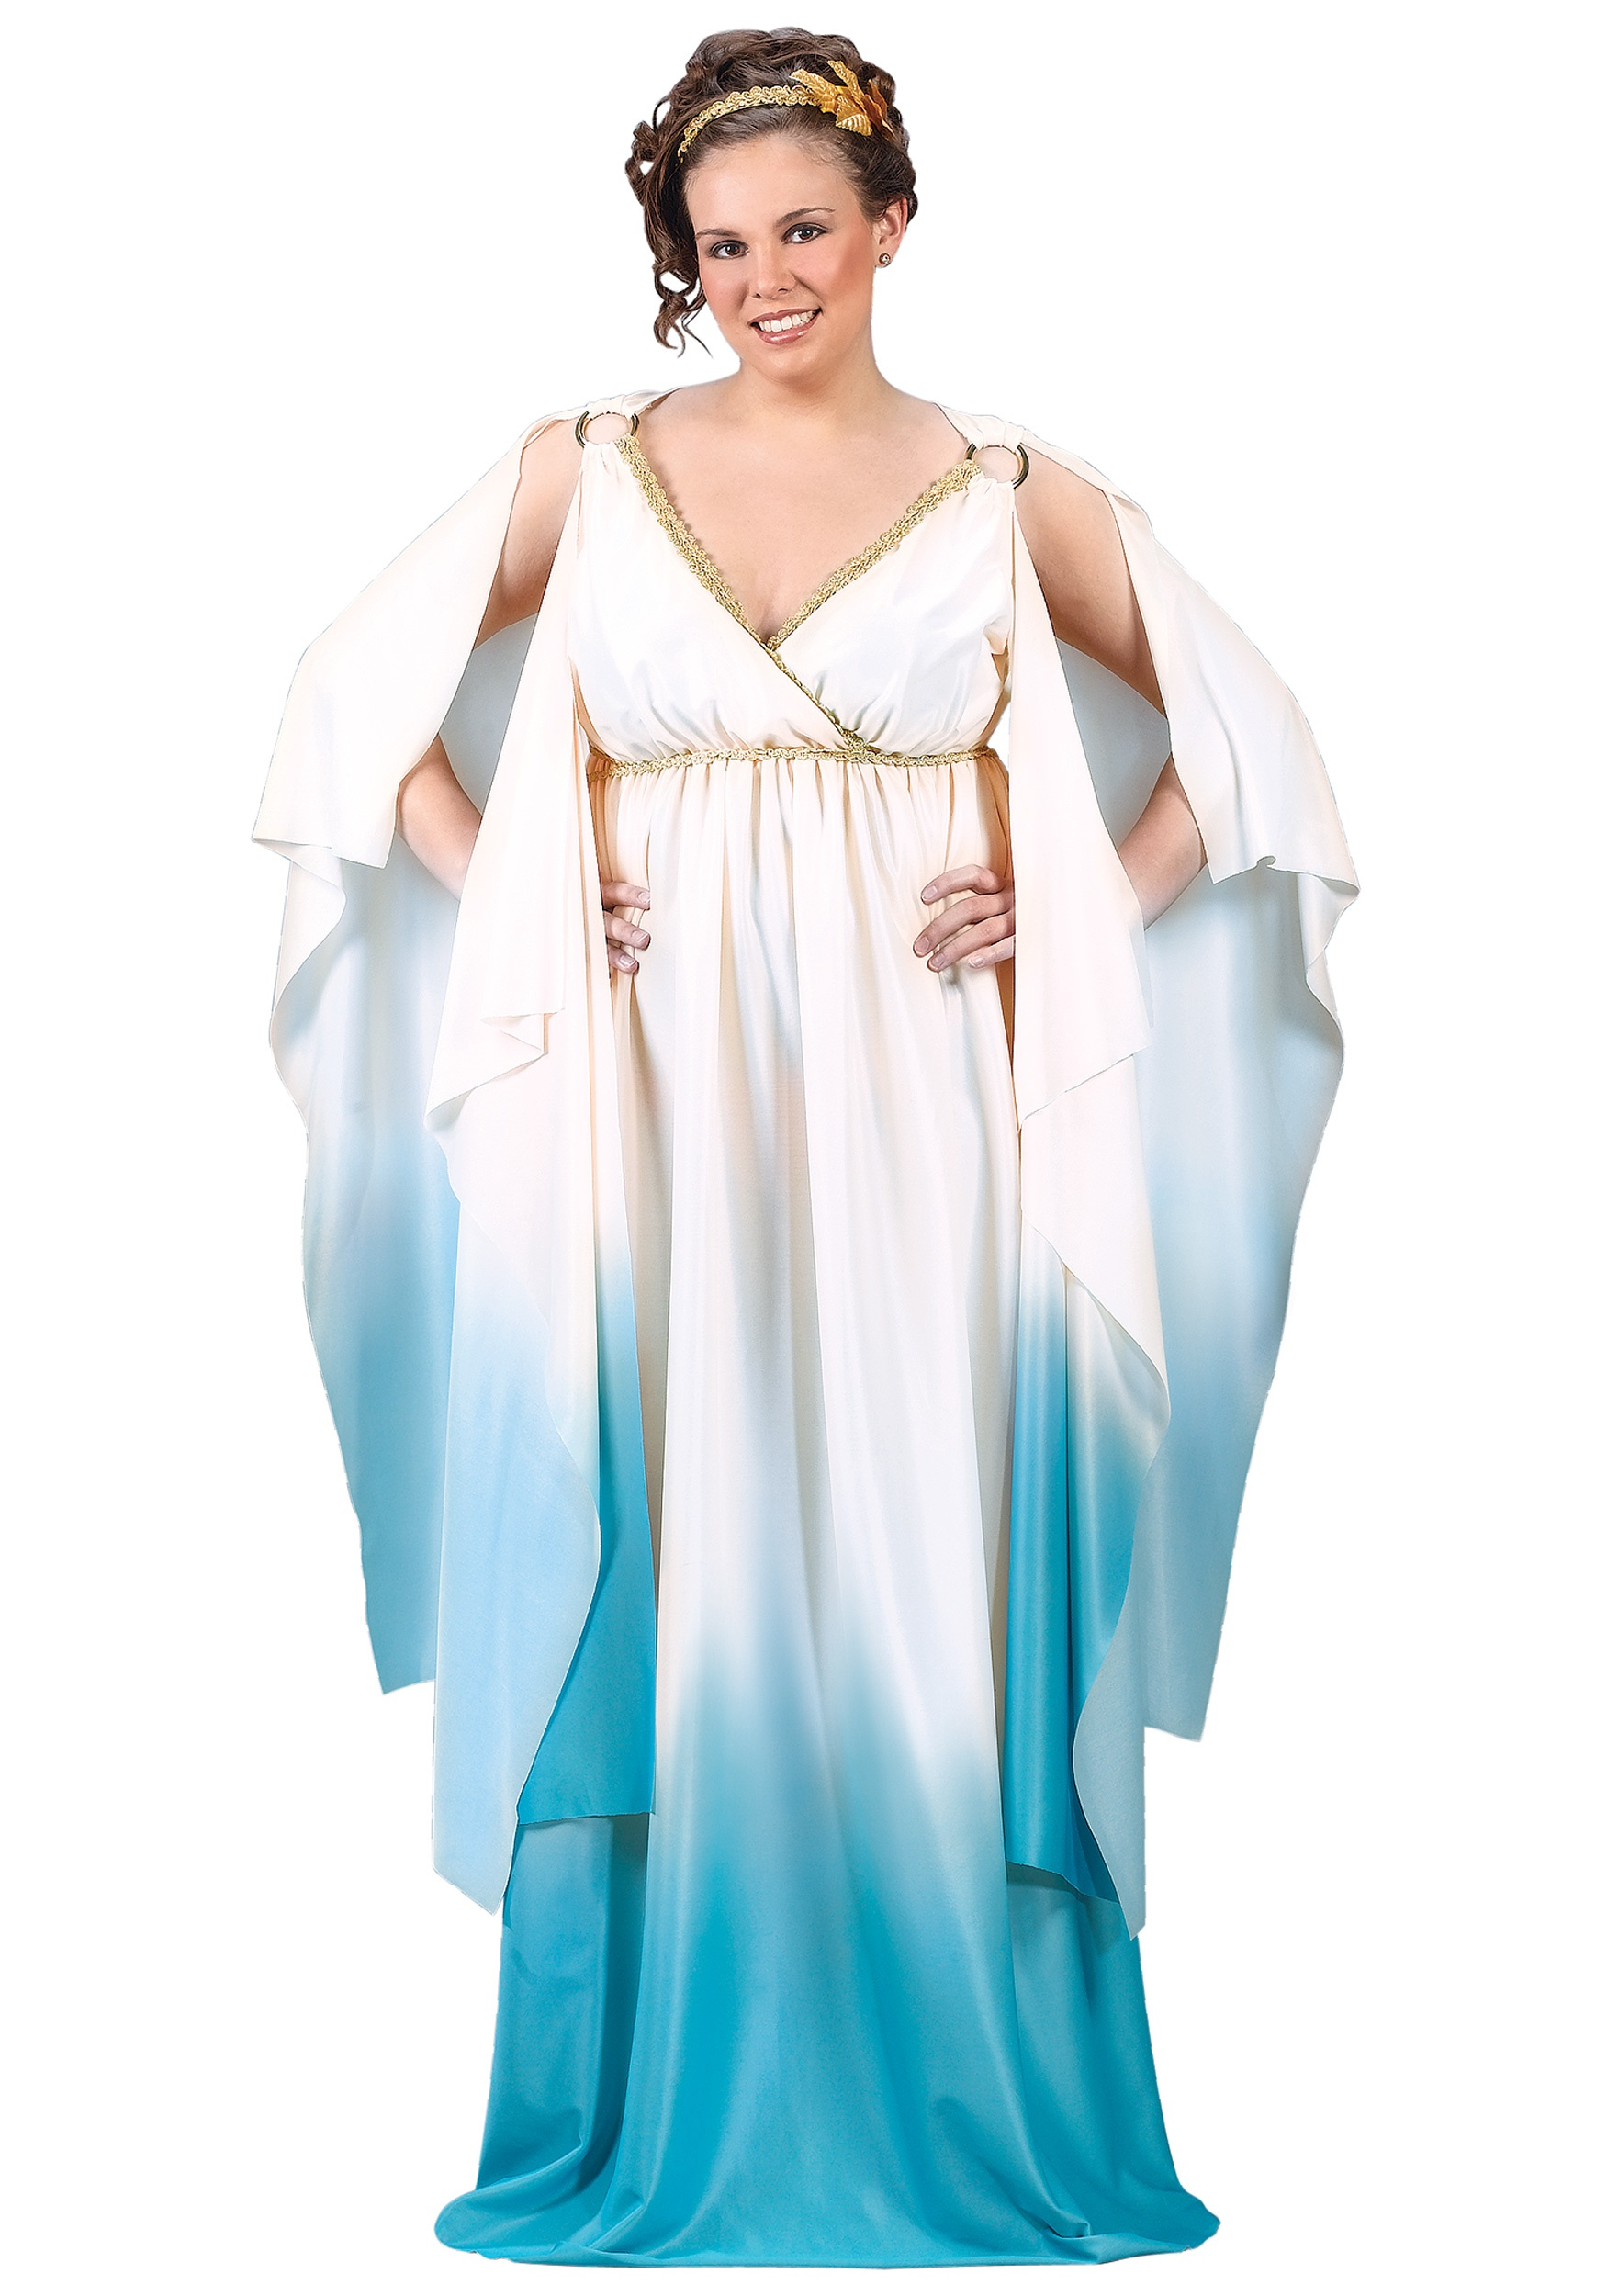 Plus Size Aphrodite Costume - Womens Plus Size Greek Mythology Costumes 747643d925